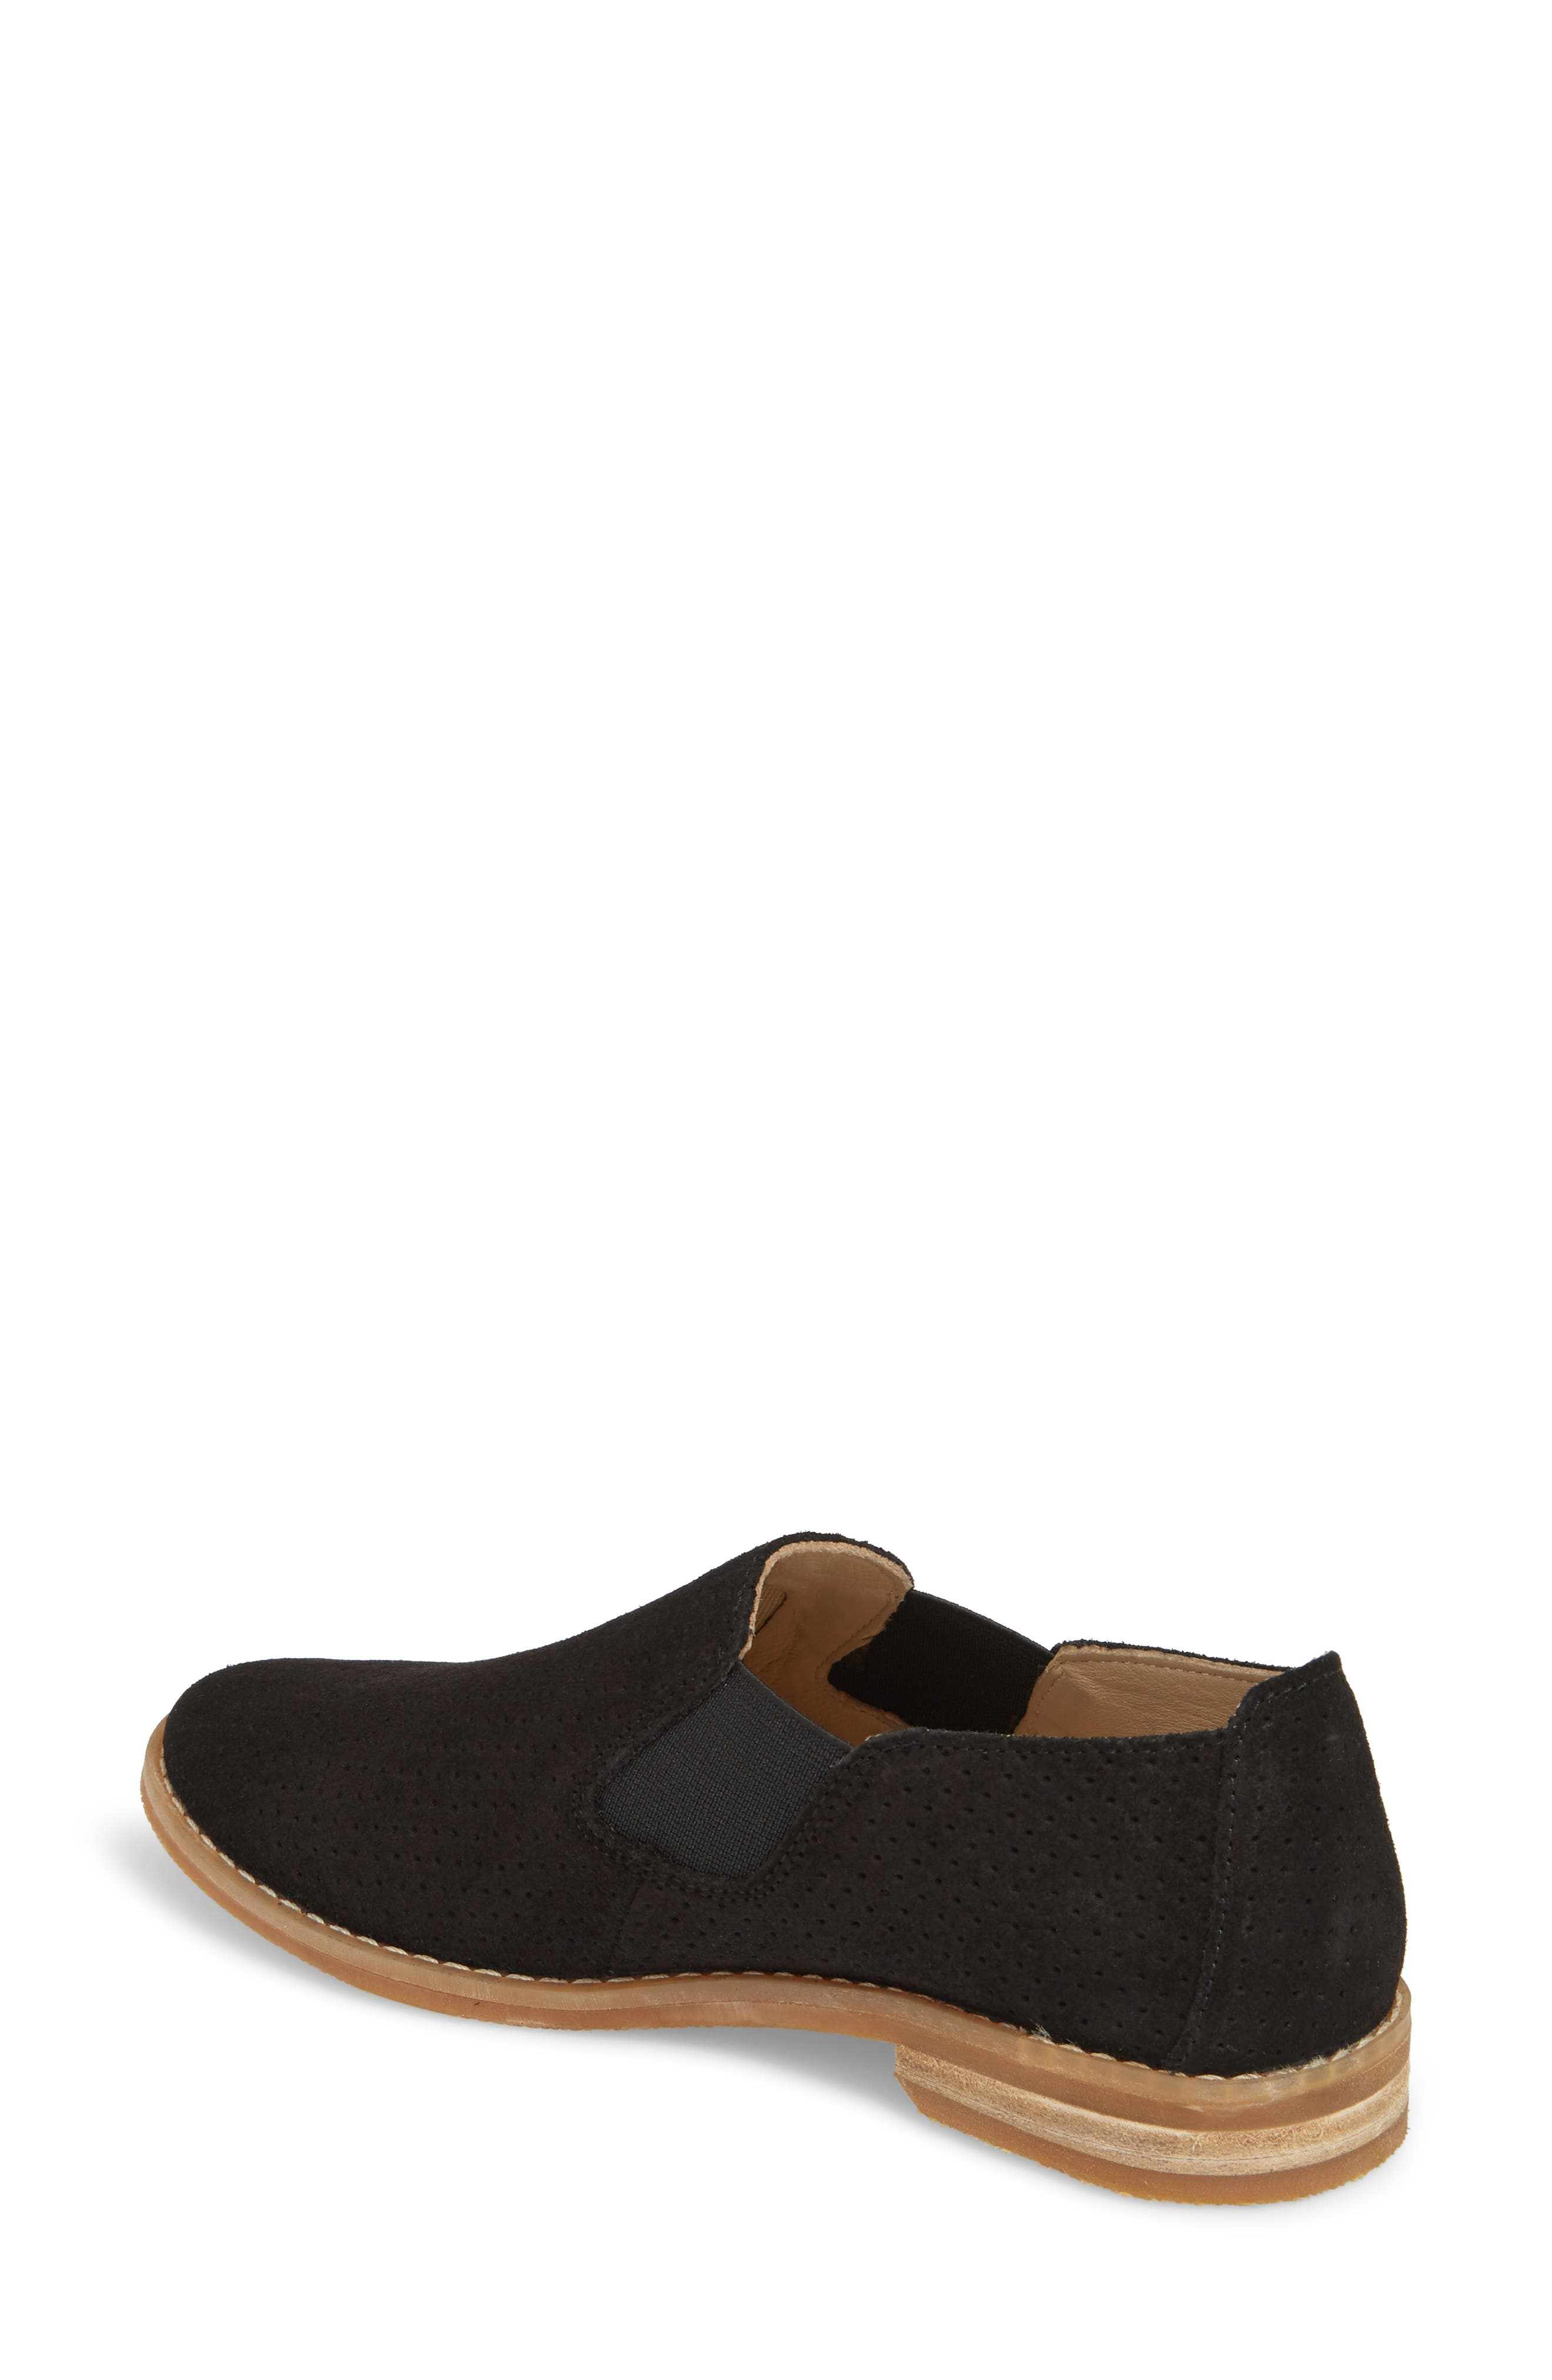 Hush Puppies Analise Clever Slip-On,                             Alternate thumbnail 2, color,                             001